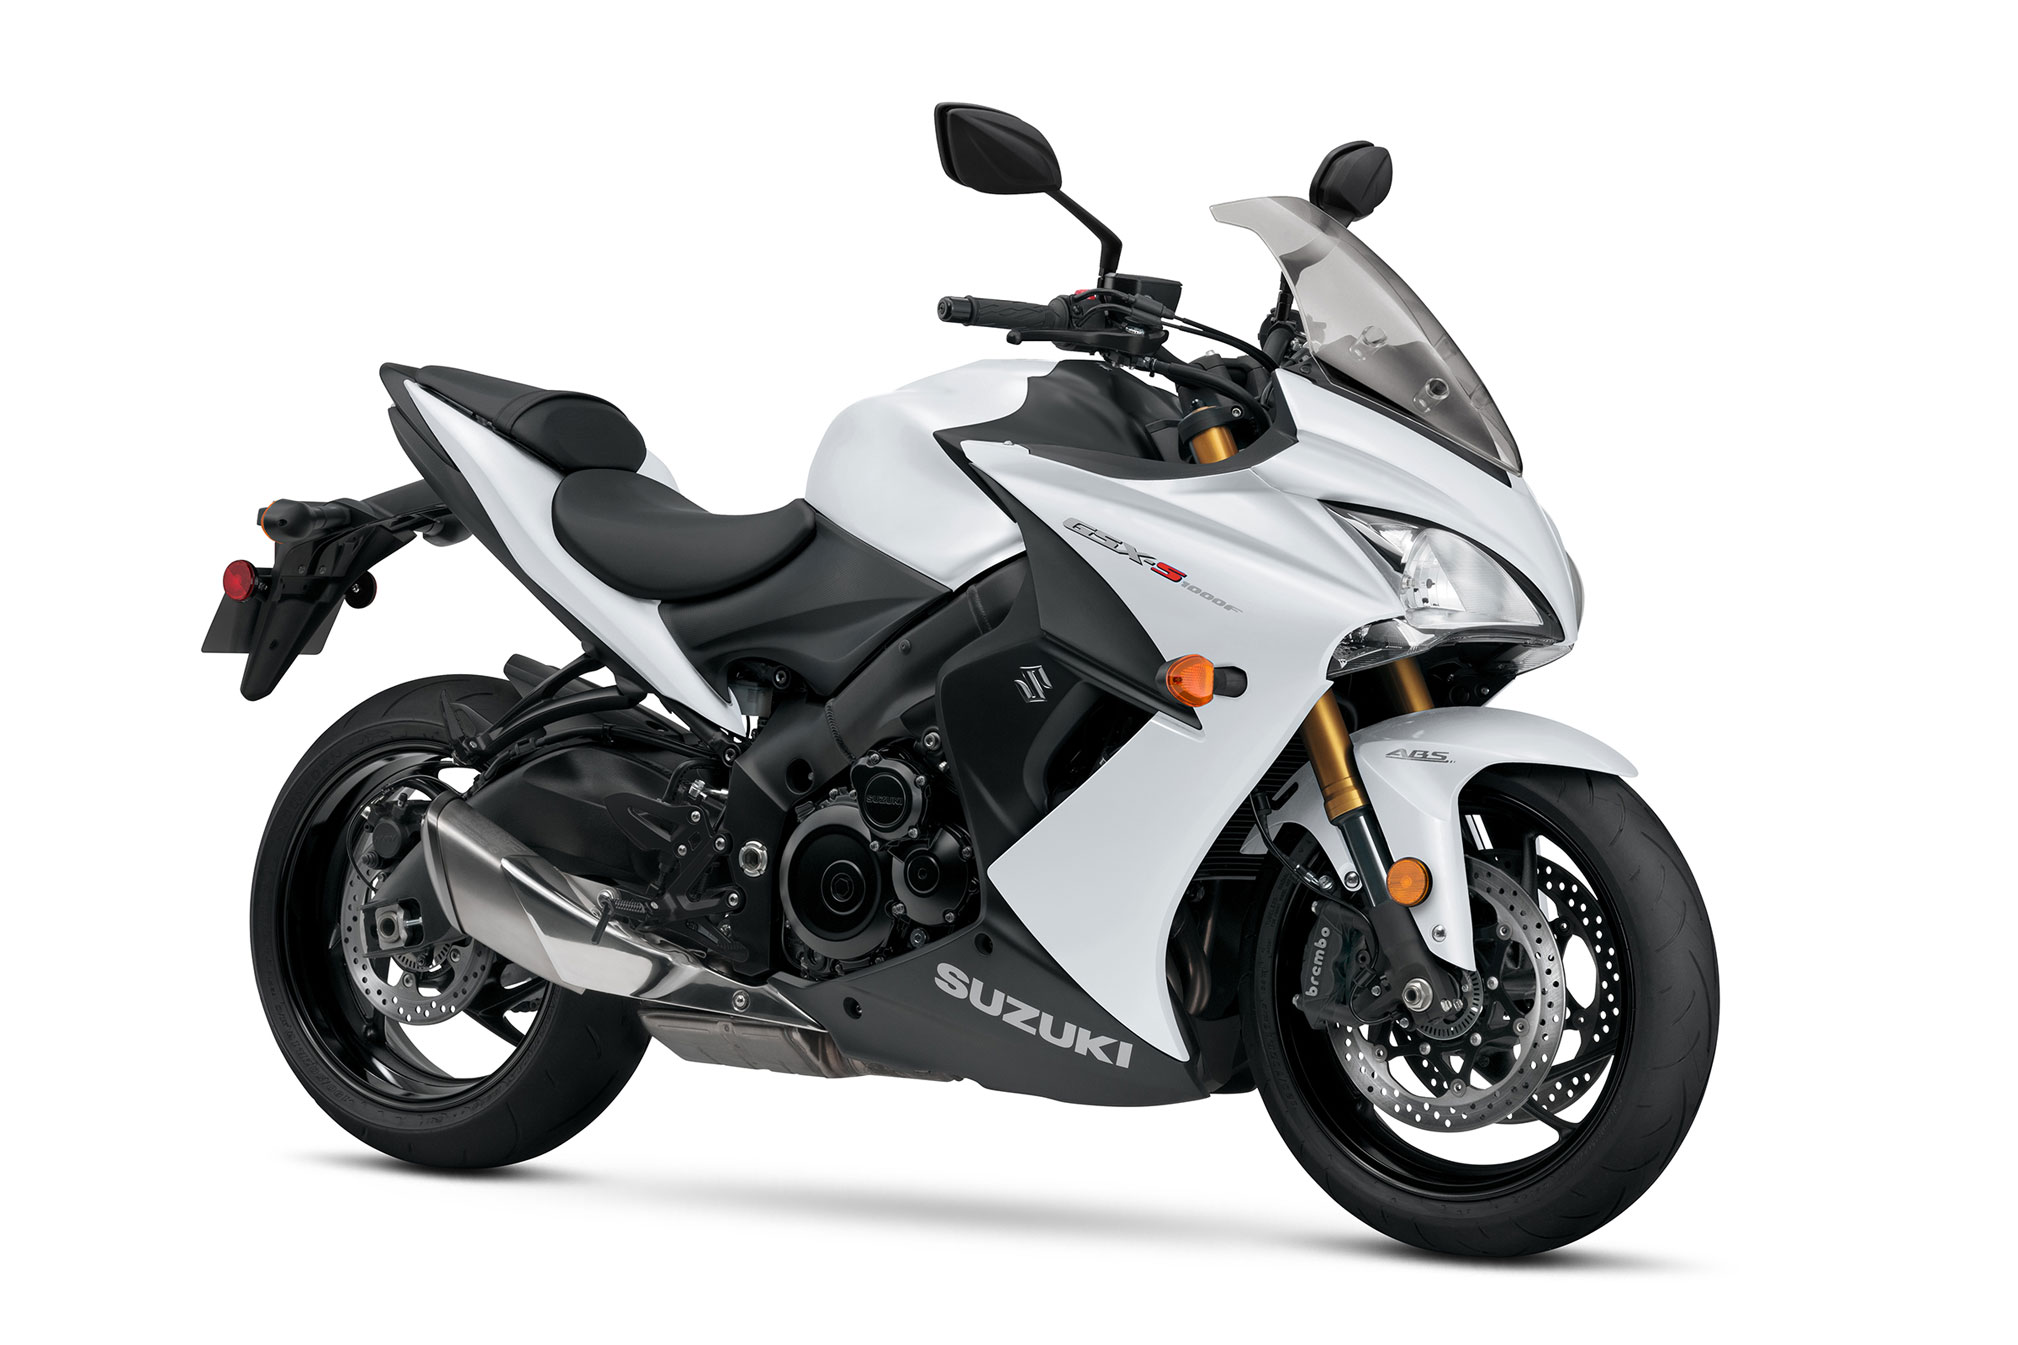 2018 Suzuki Gsx S1000f Abs Review Totalmotorcycle